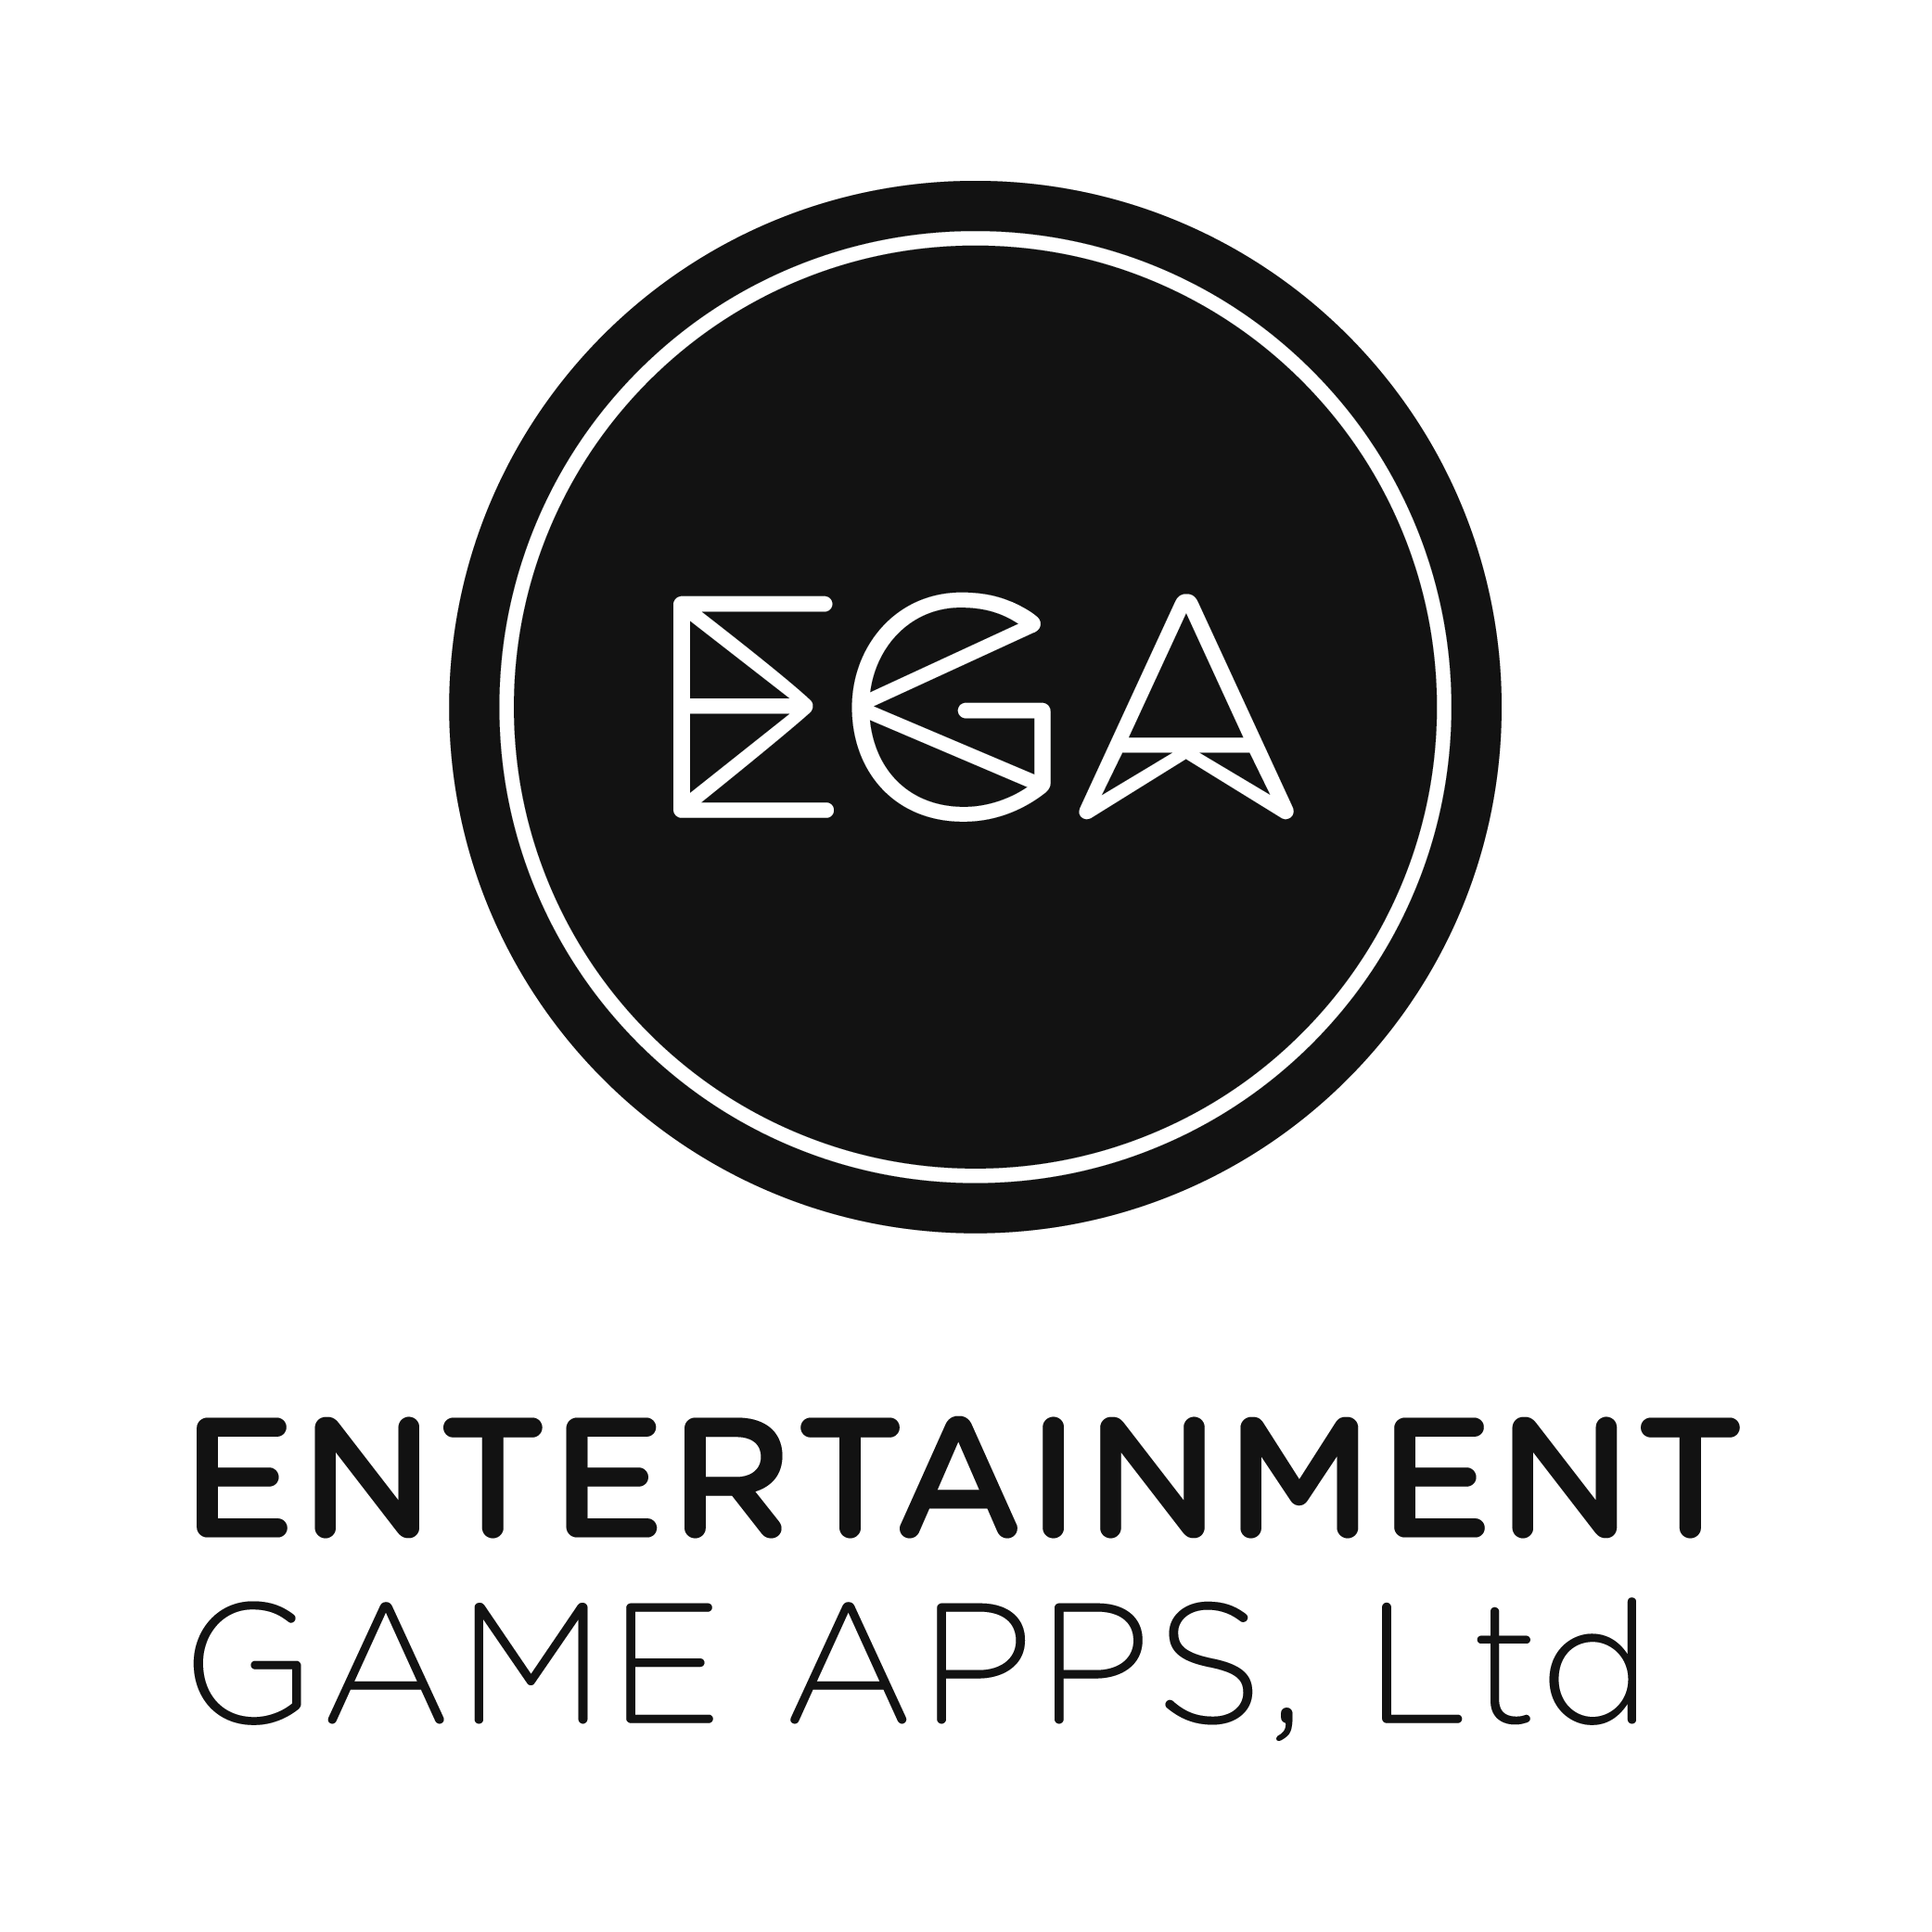 02_ENTERTAINMENT GAME APPS_logo_straked-highres.png